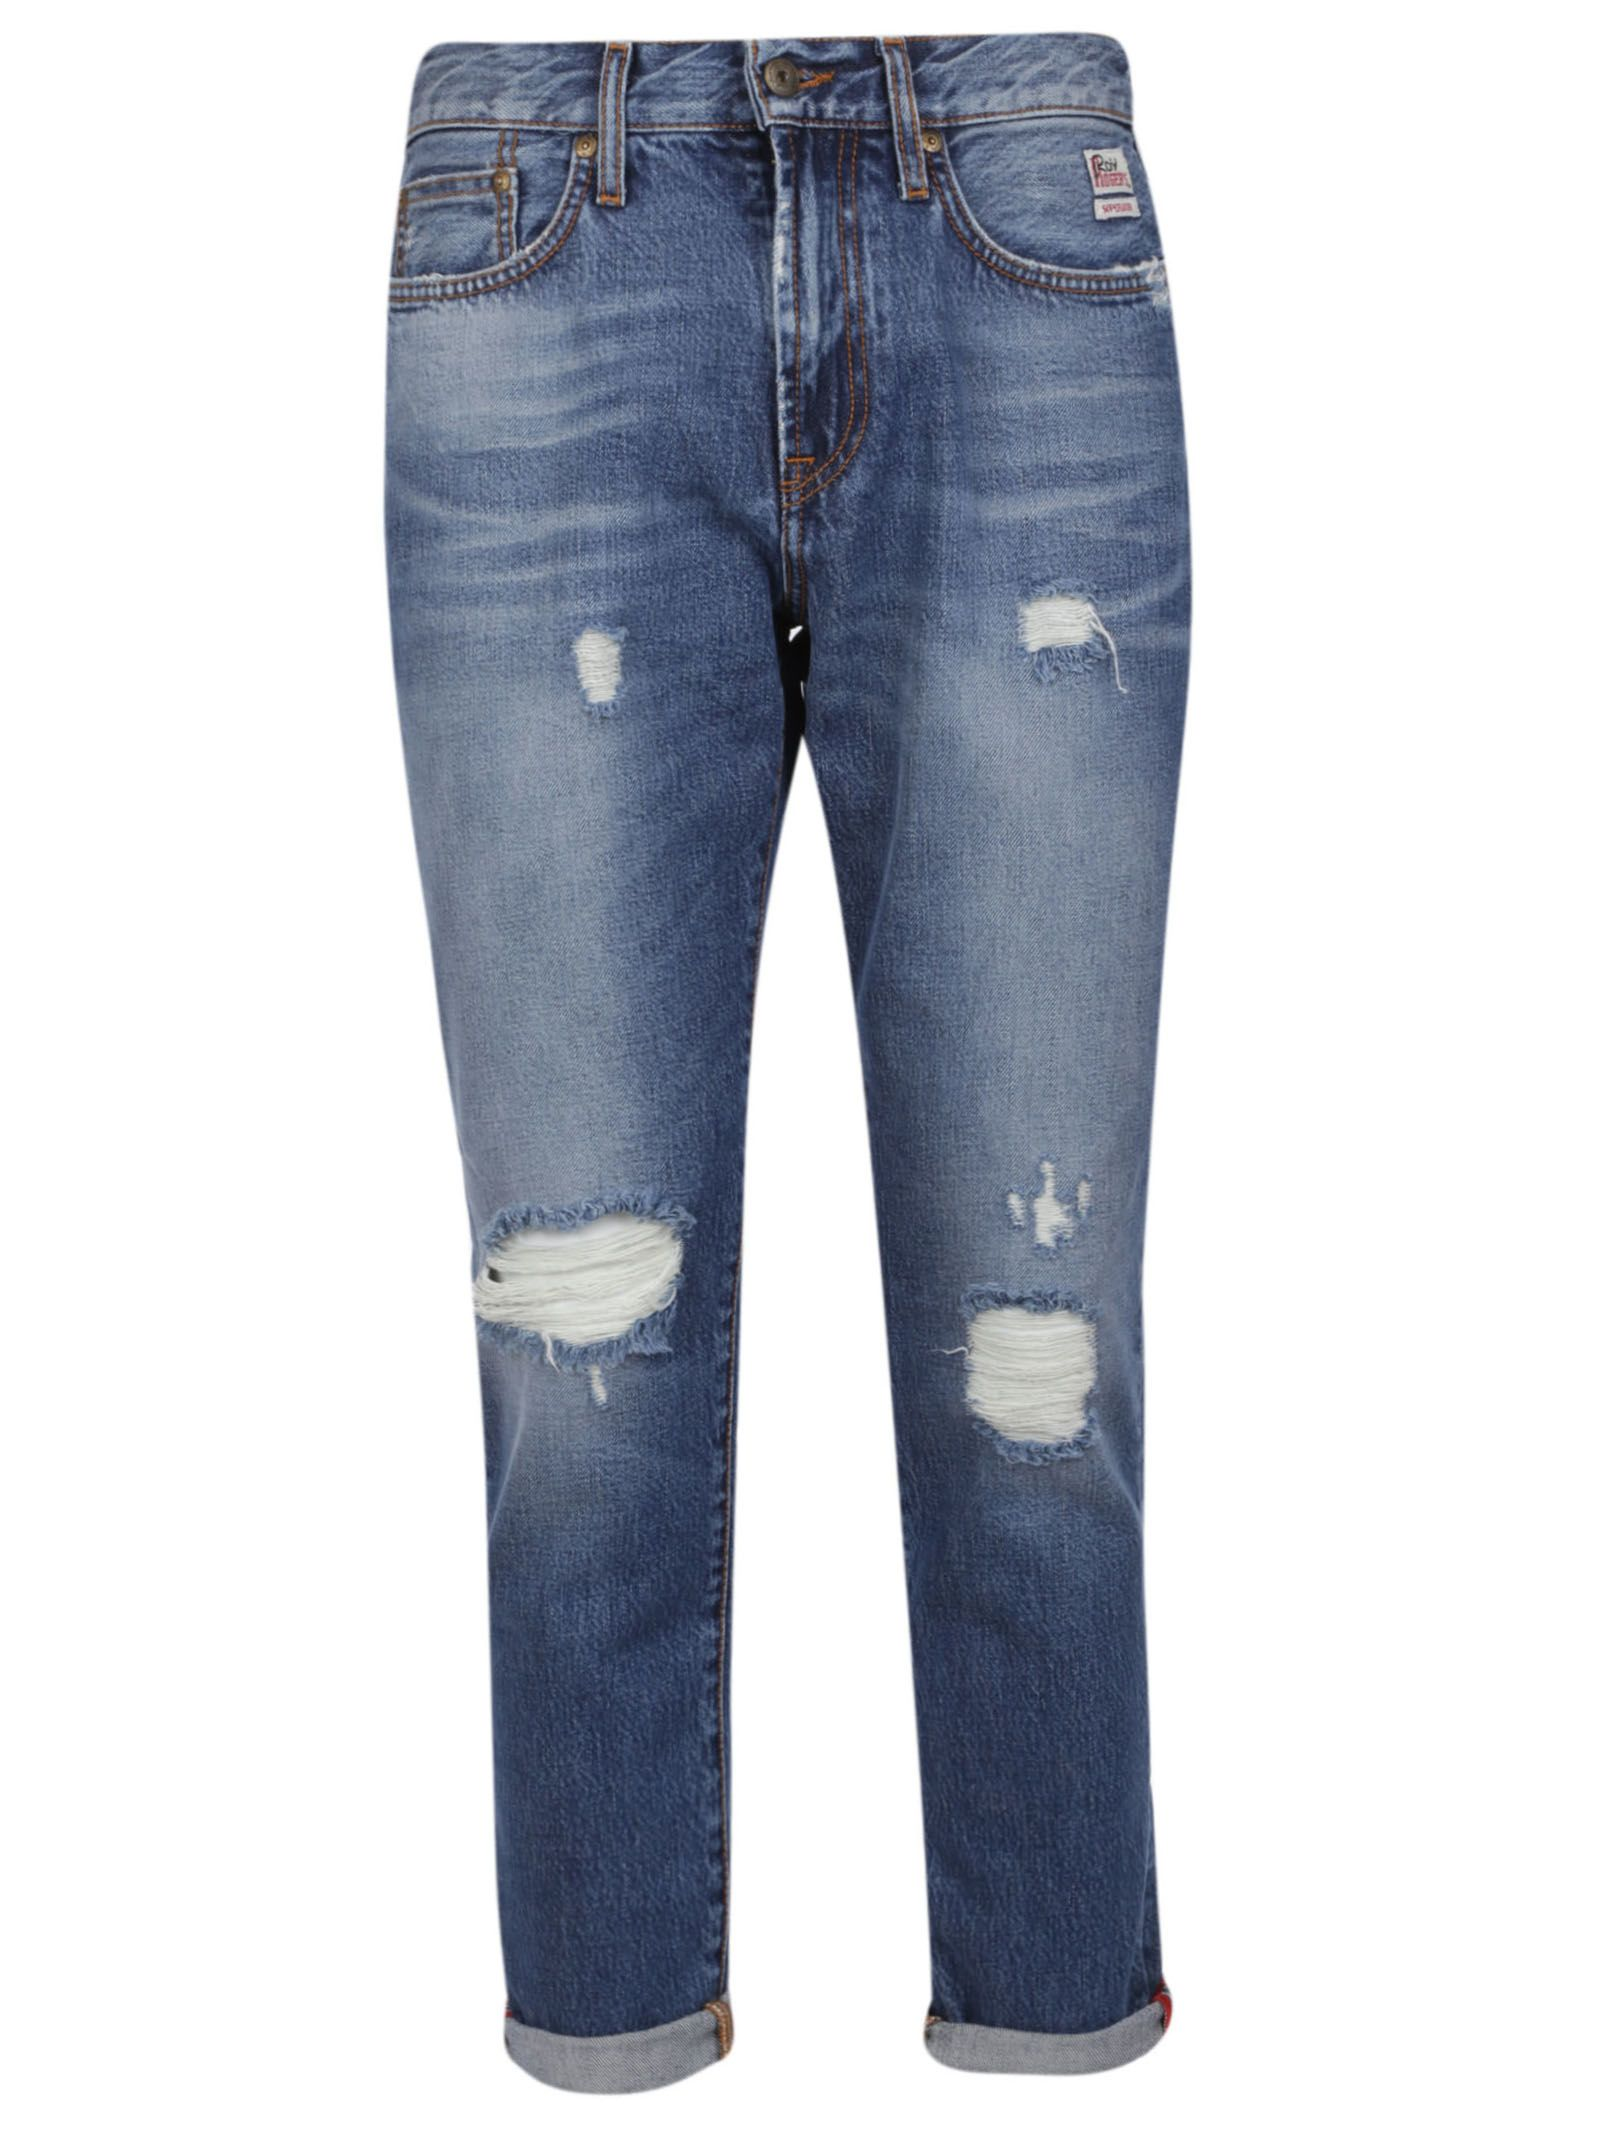 ROY ROGERS Distressed Jeans in Denim